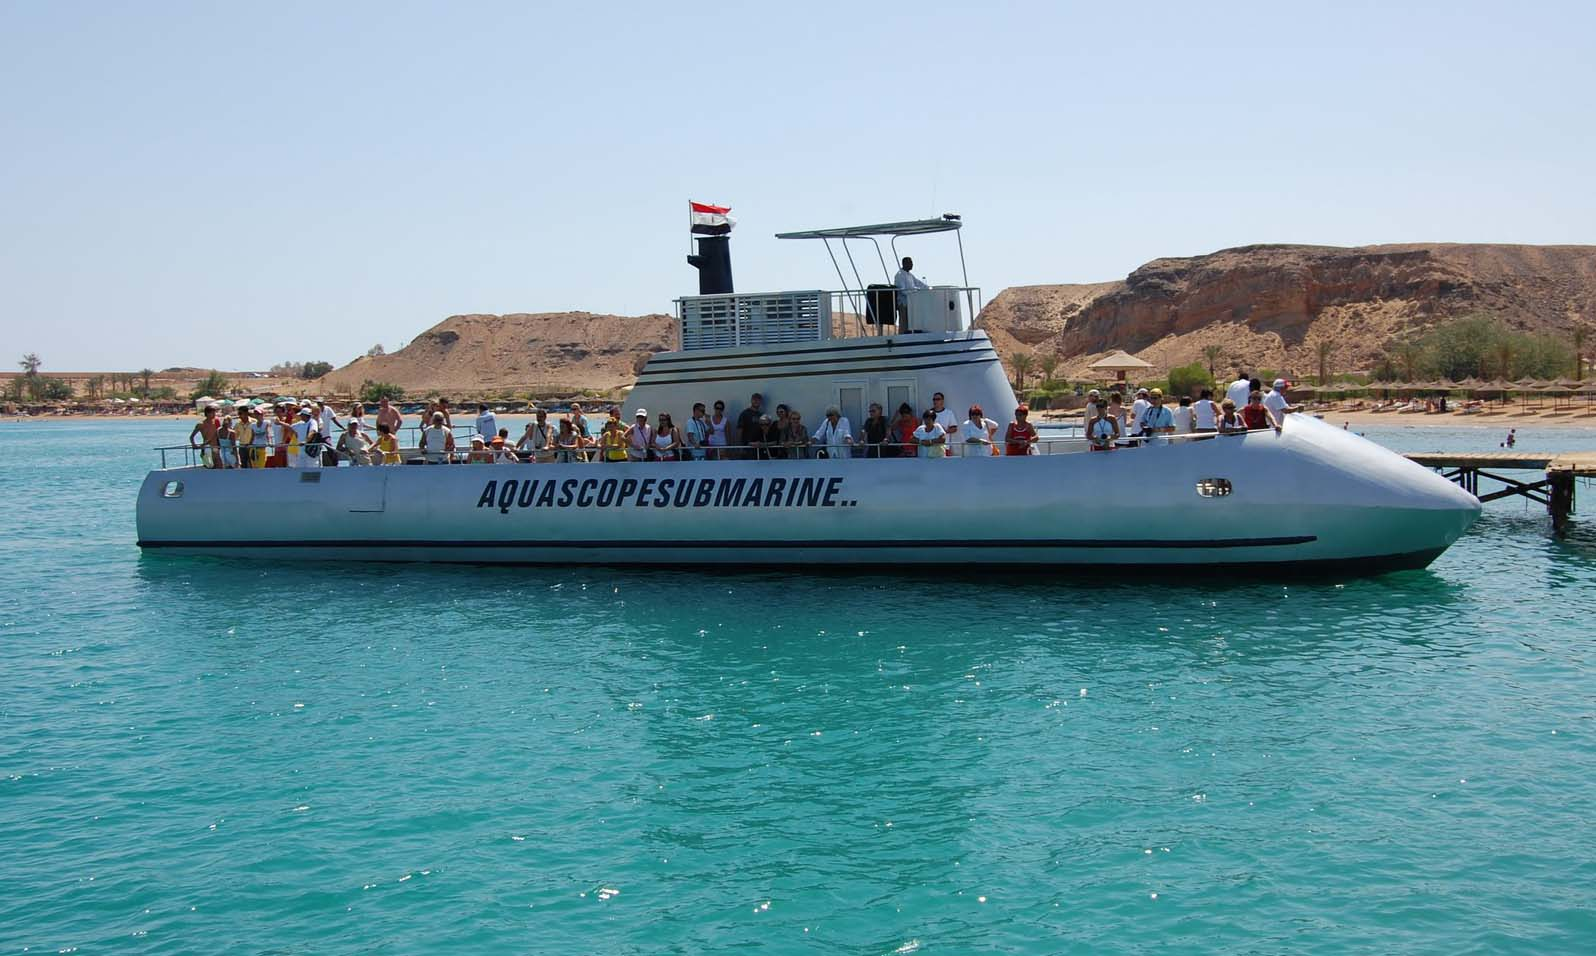 Excursiones semi submarinas en Sharm el Sheikh